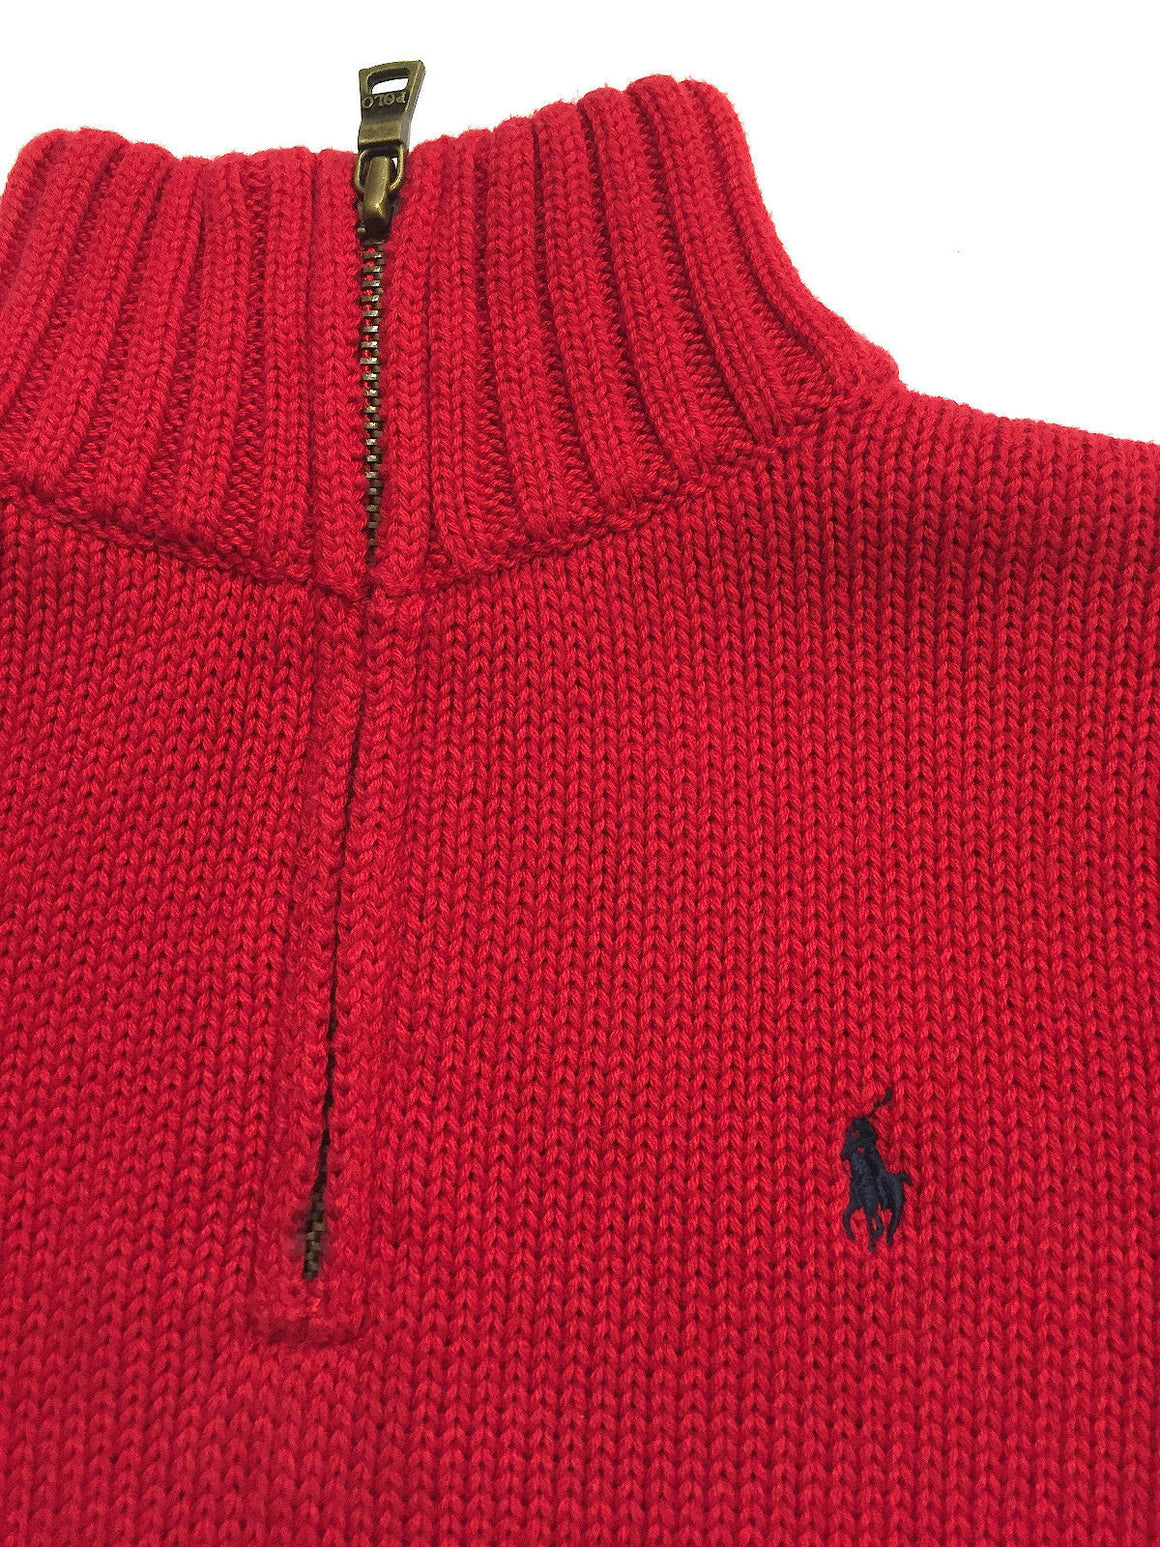 bisbiz.com POL0-RALPH LAUREN Red Cotton Boys Knit Zip-Neck Henley Top Size: 6 Years - Bis Luxury Resale